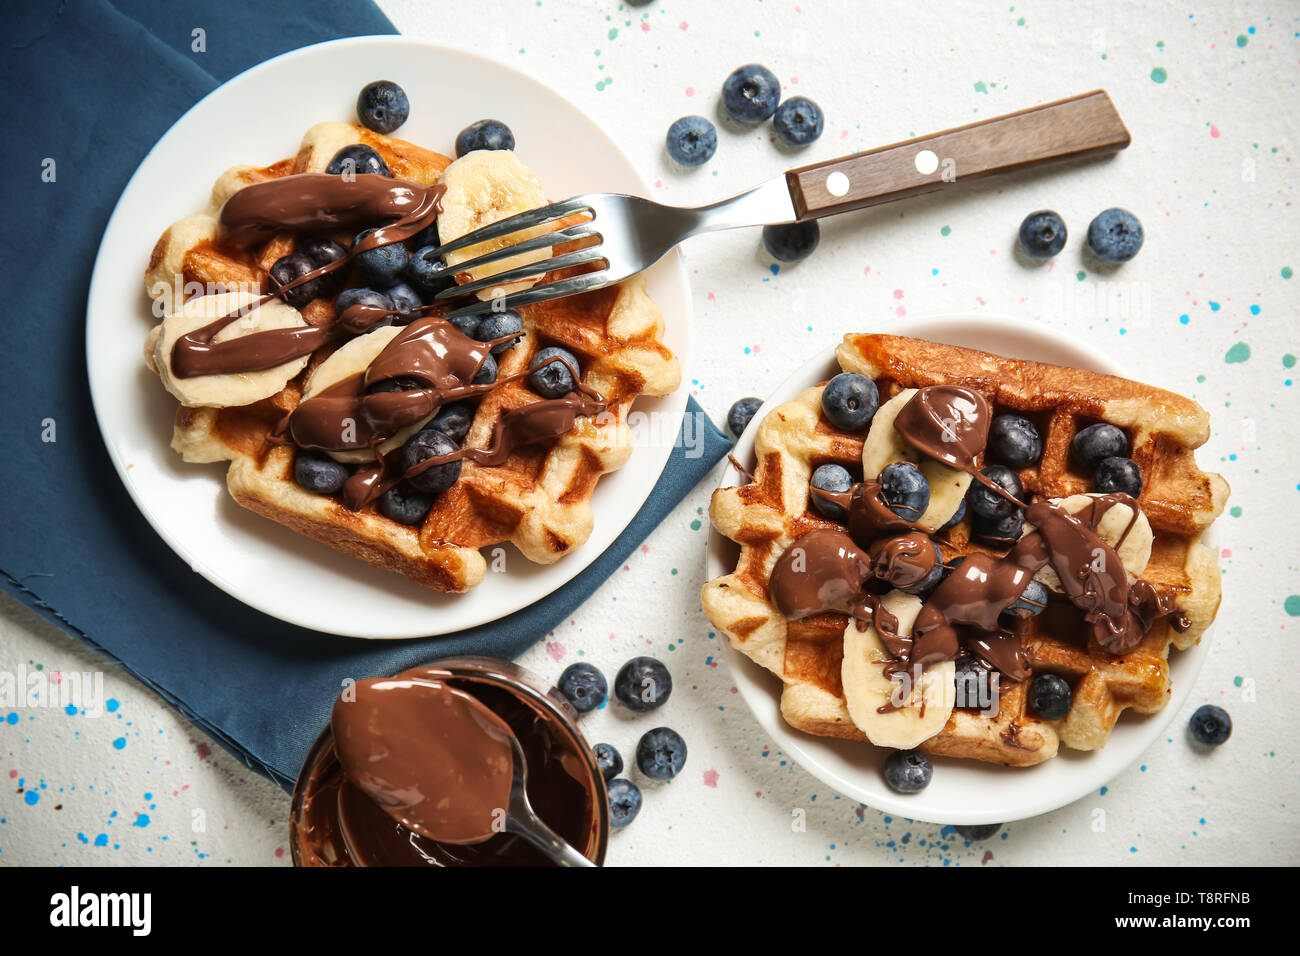 Delicious waffles with banana slices, blueberries and chocolate sauce on light table - Stock Image